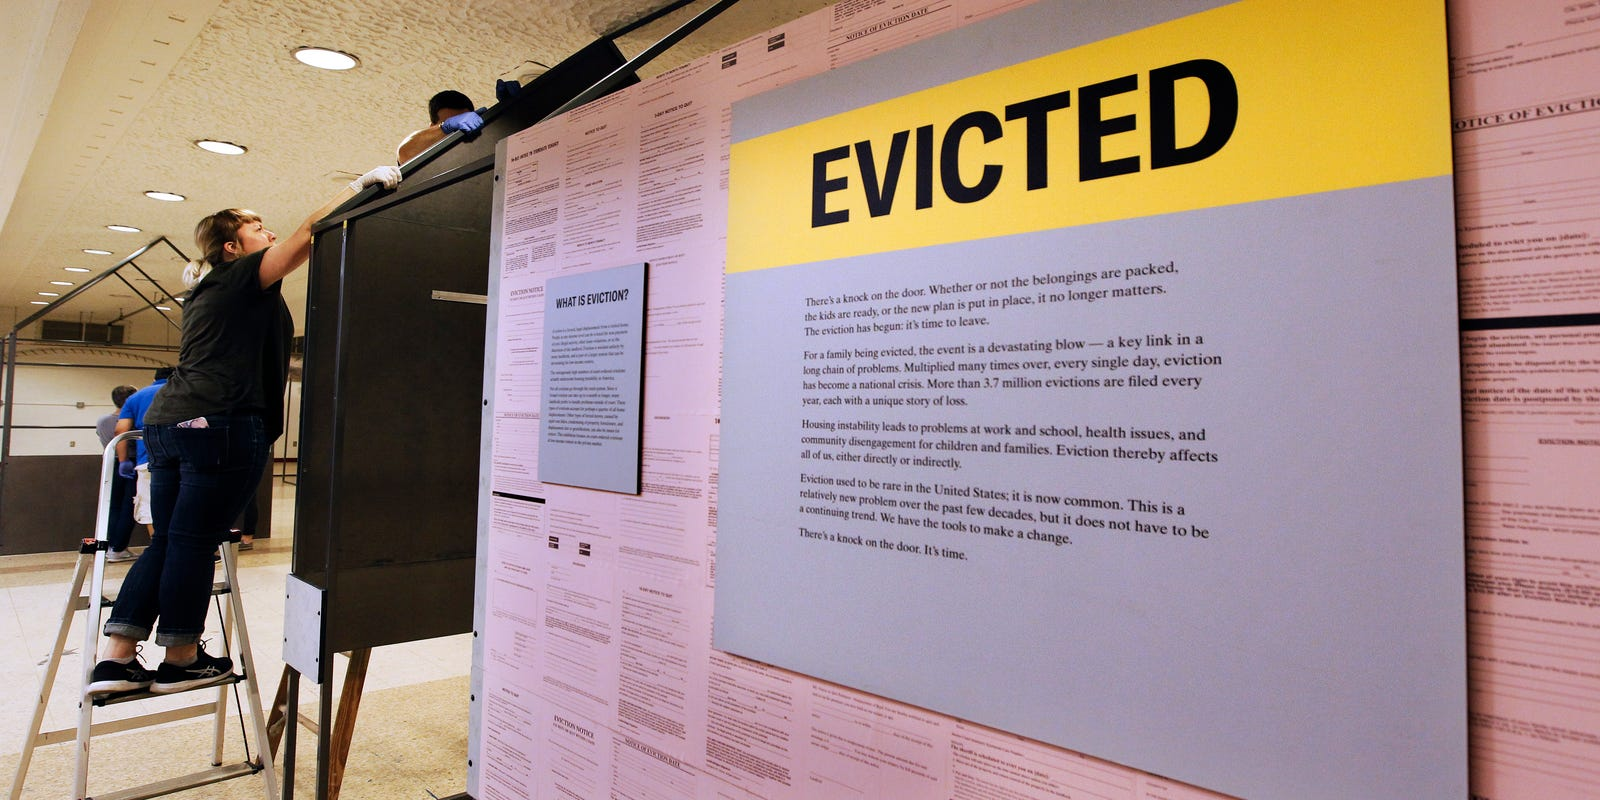 Expect The Most Evictions In History As Ban Expires